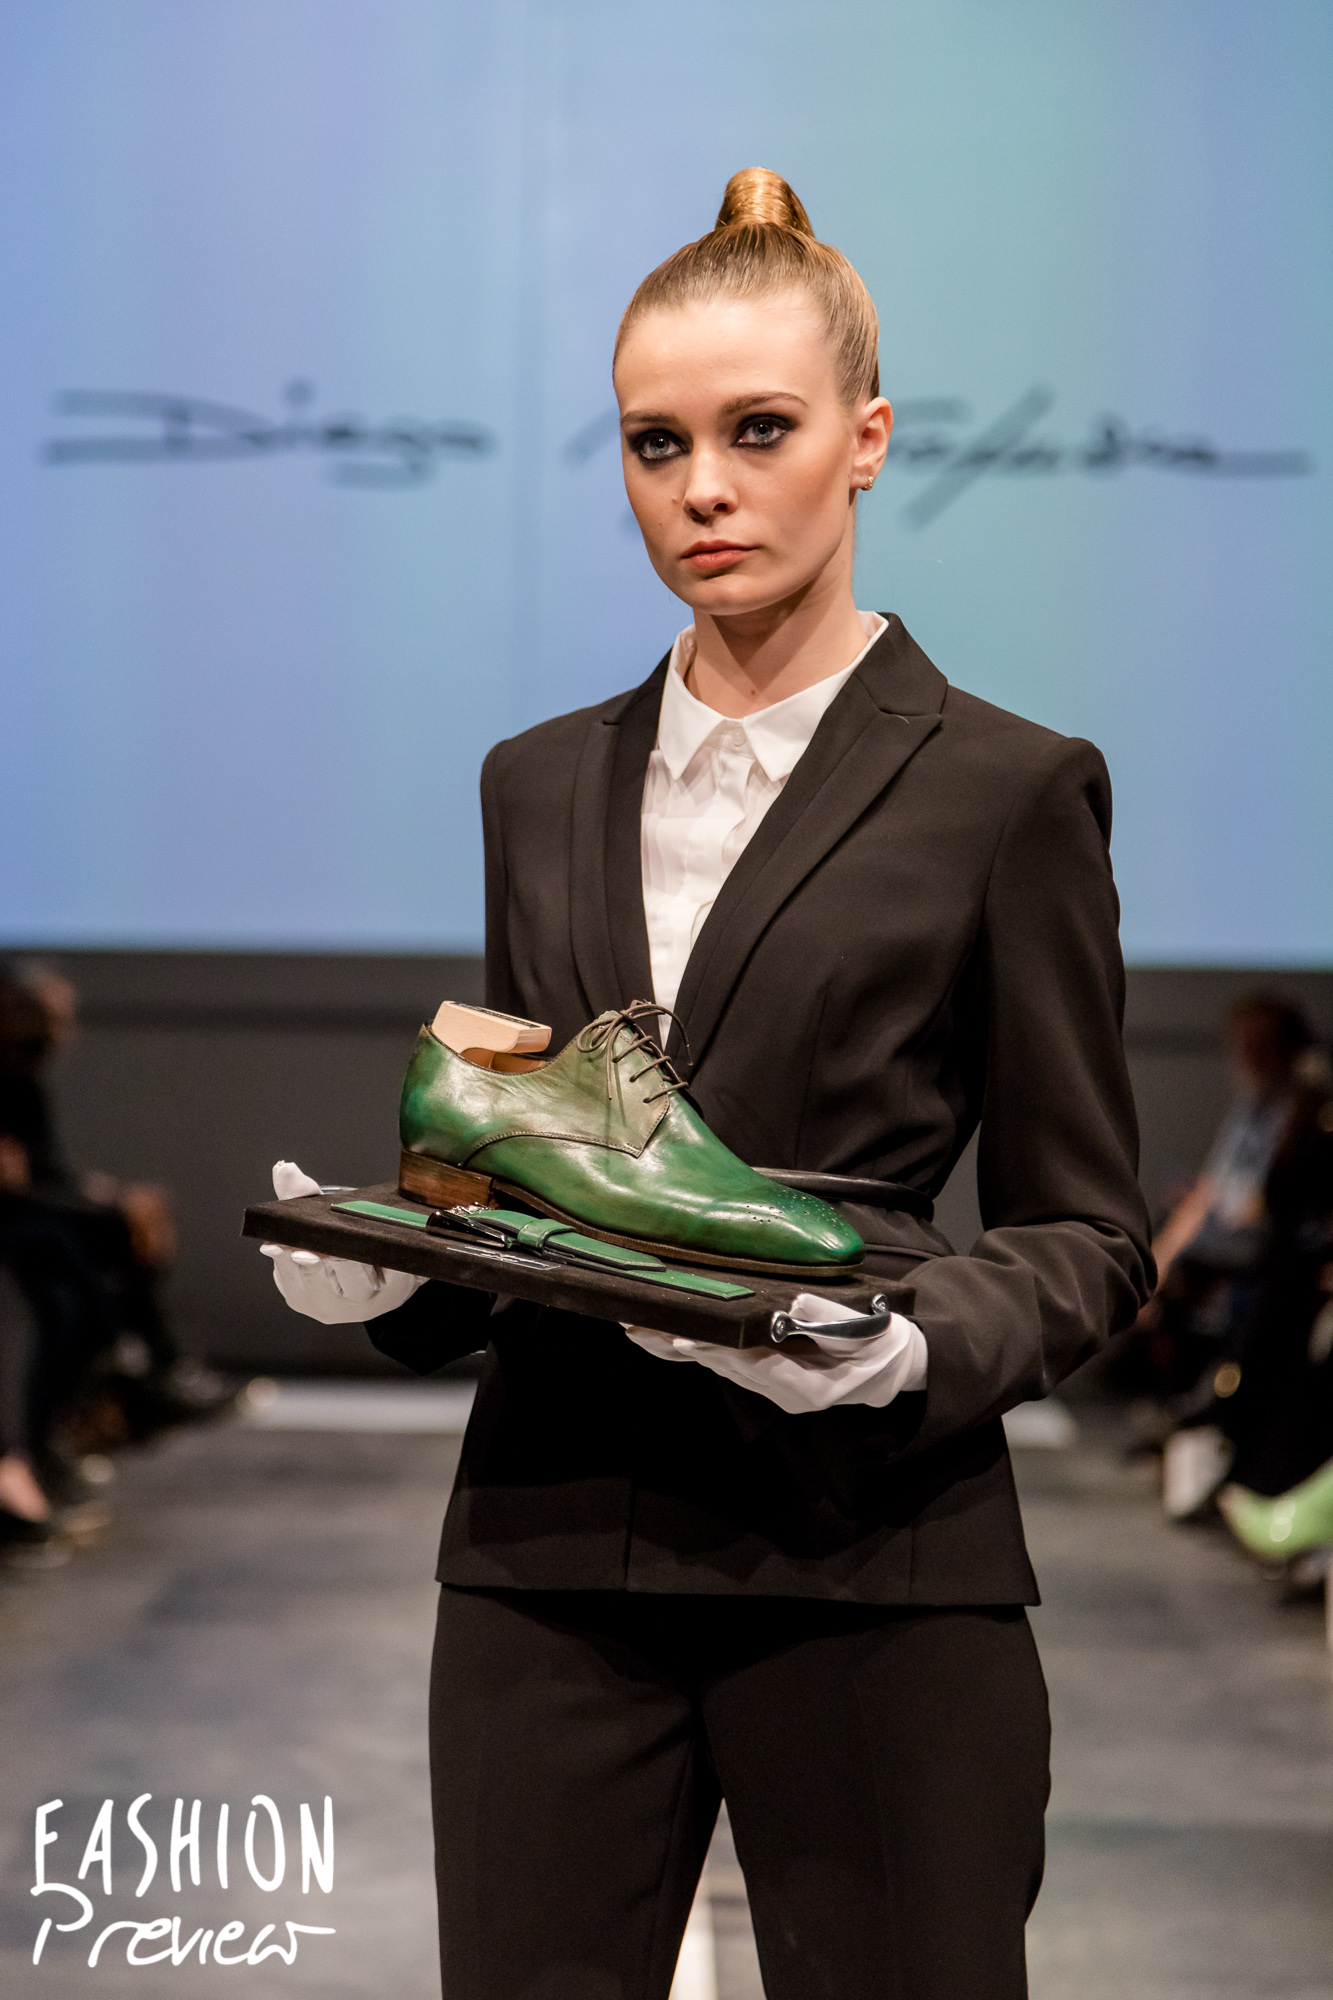 Fashion Preview 9 - Diego Montefusco-11.jpg